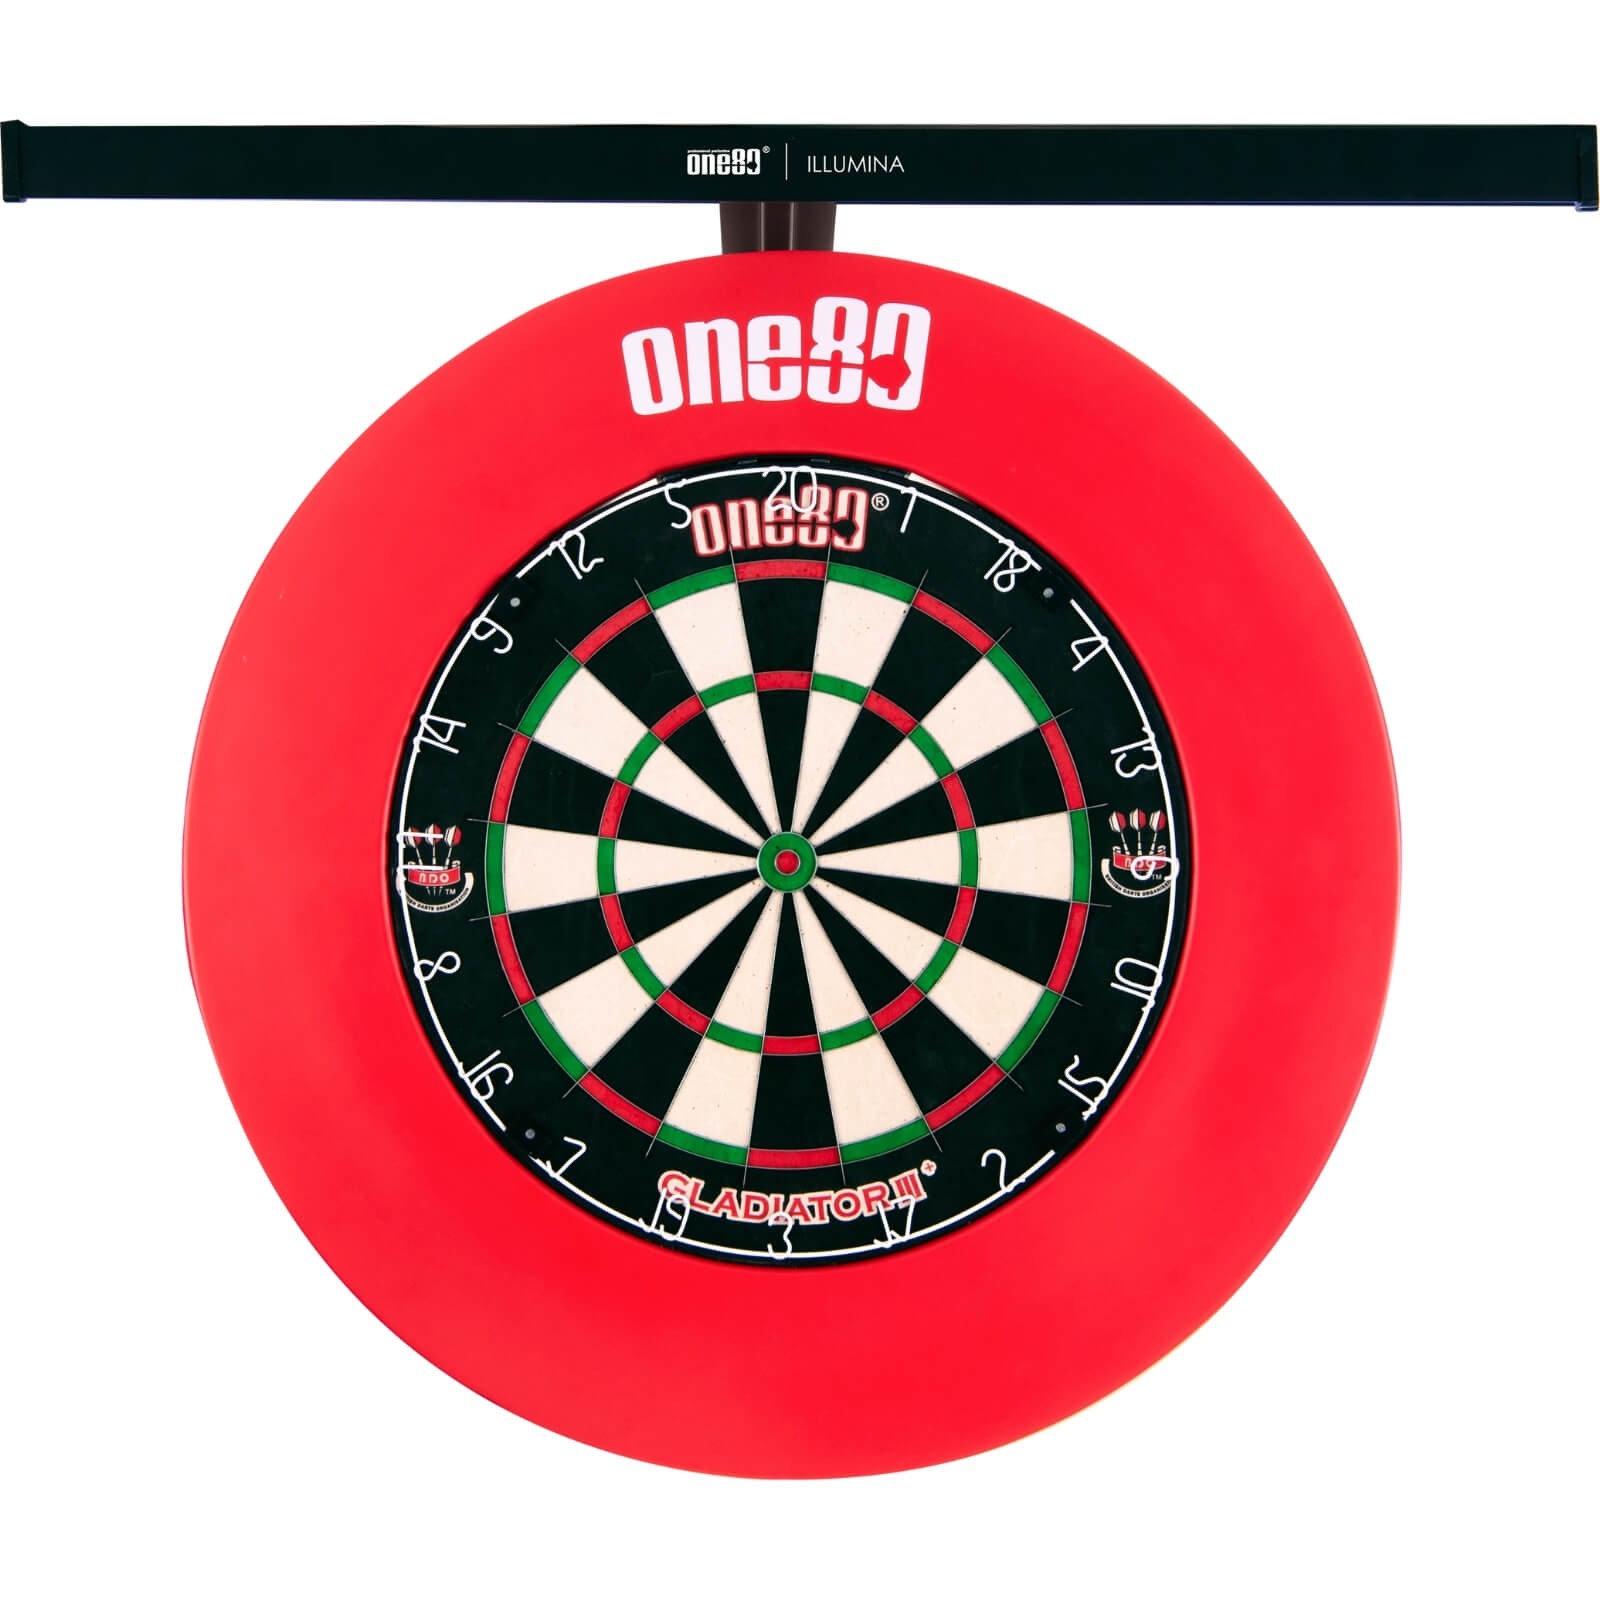 Dartboard Accessories - One80 - Illumina Dartboard Light